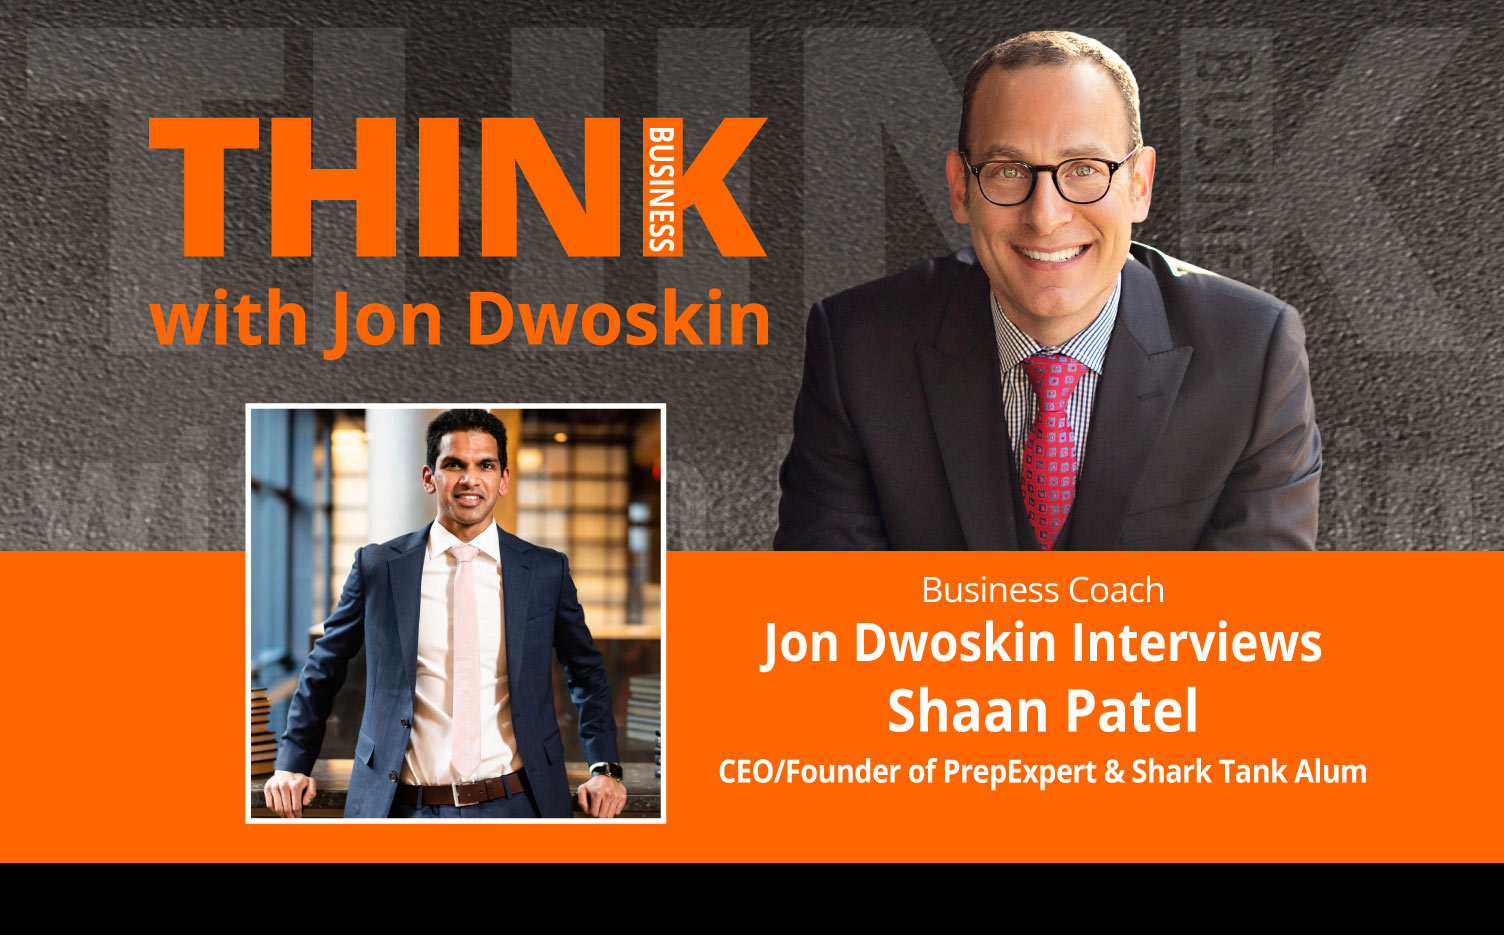 THINK Business Podcast: Jon Dwoskin Interviews Shaan Patel, Ceo/Founder of PrepExpert & Shark Tank Alum